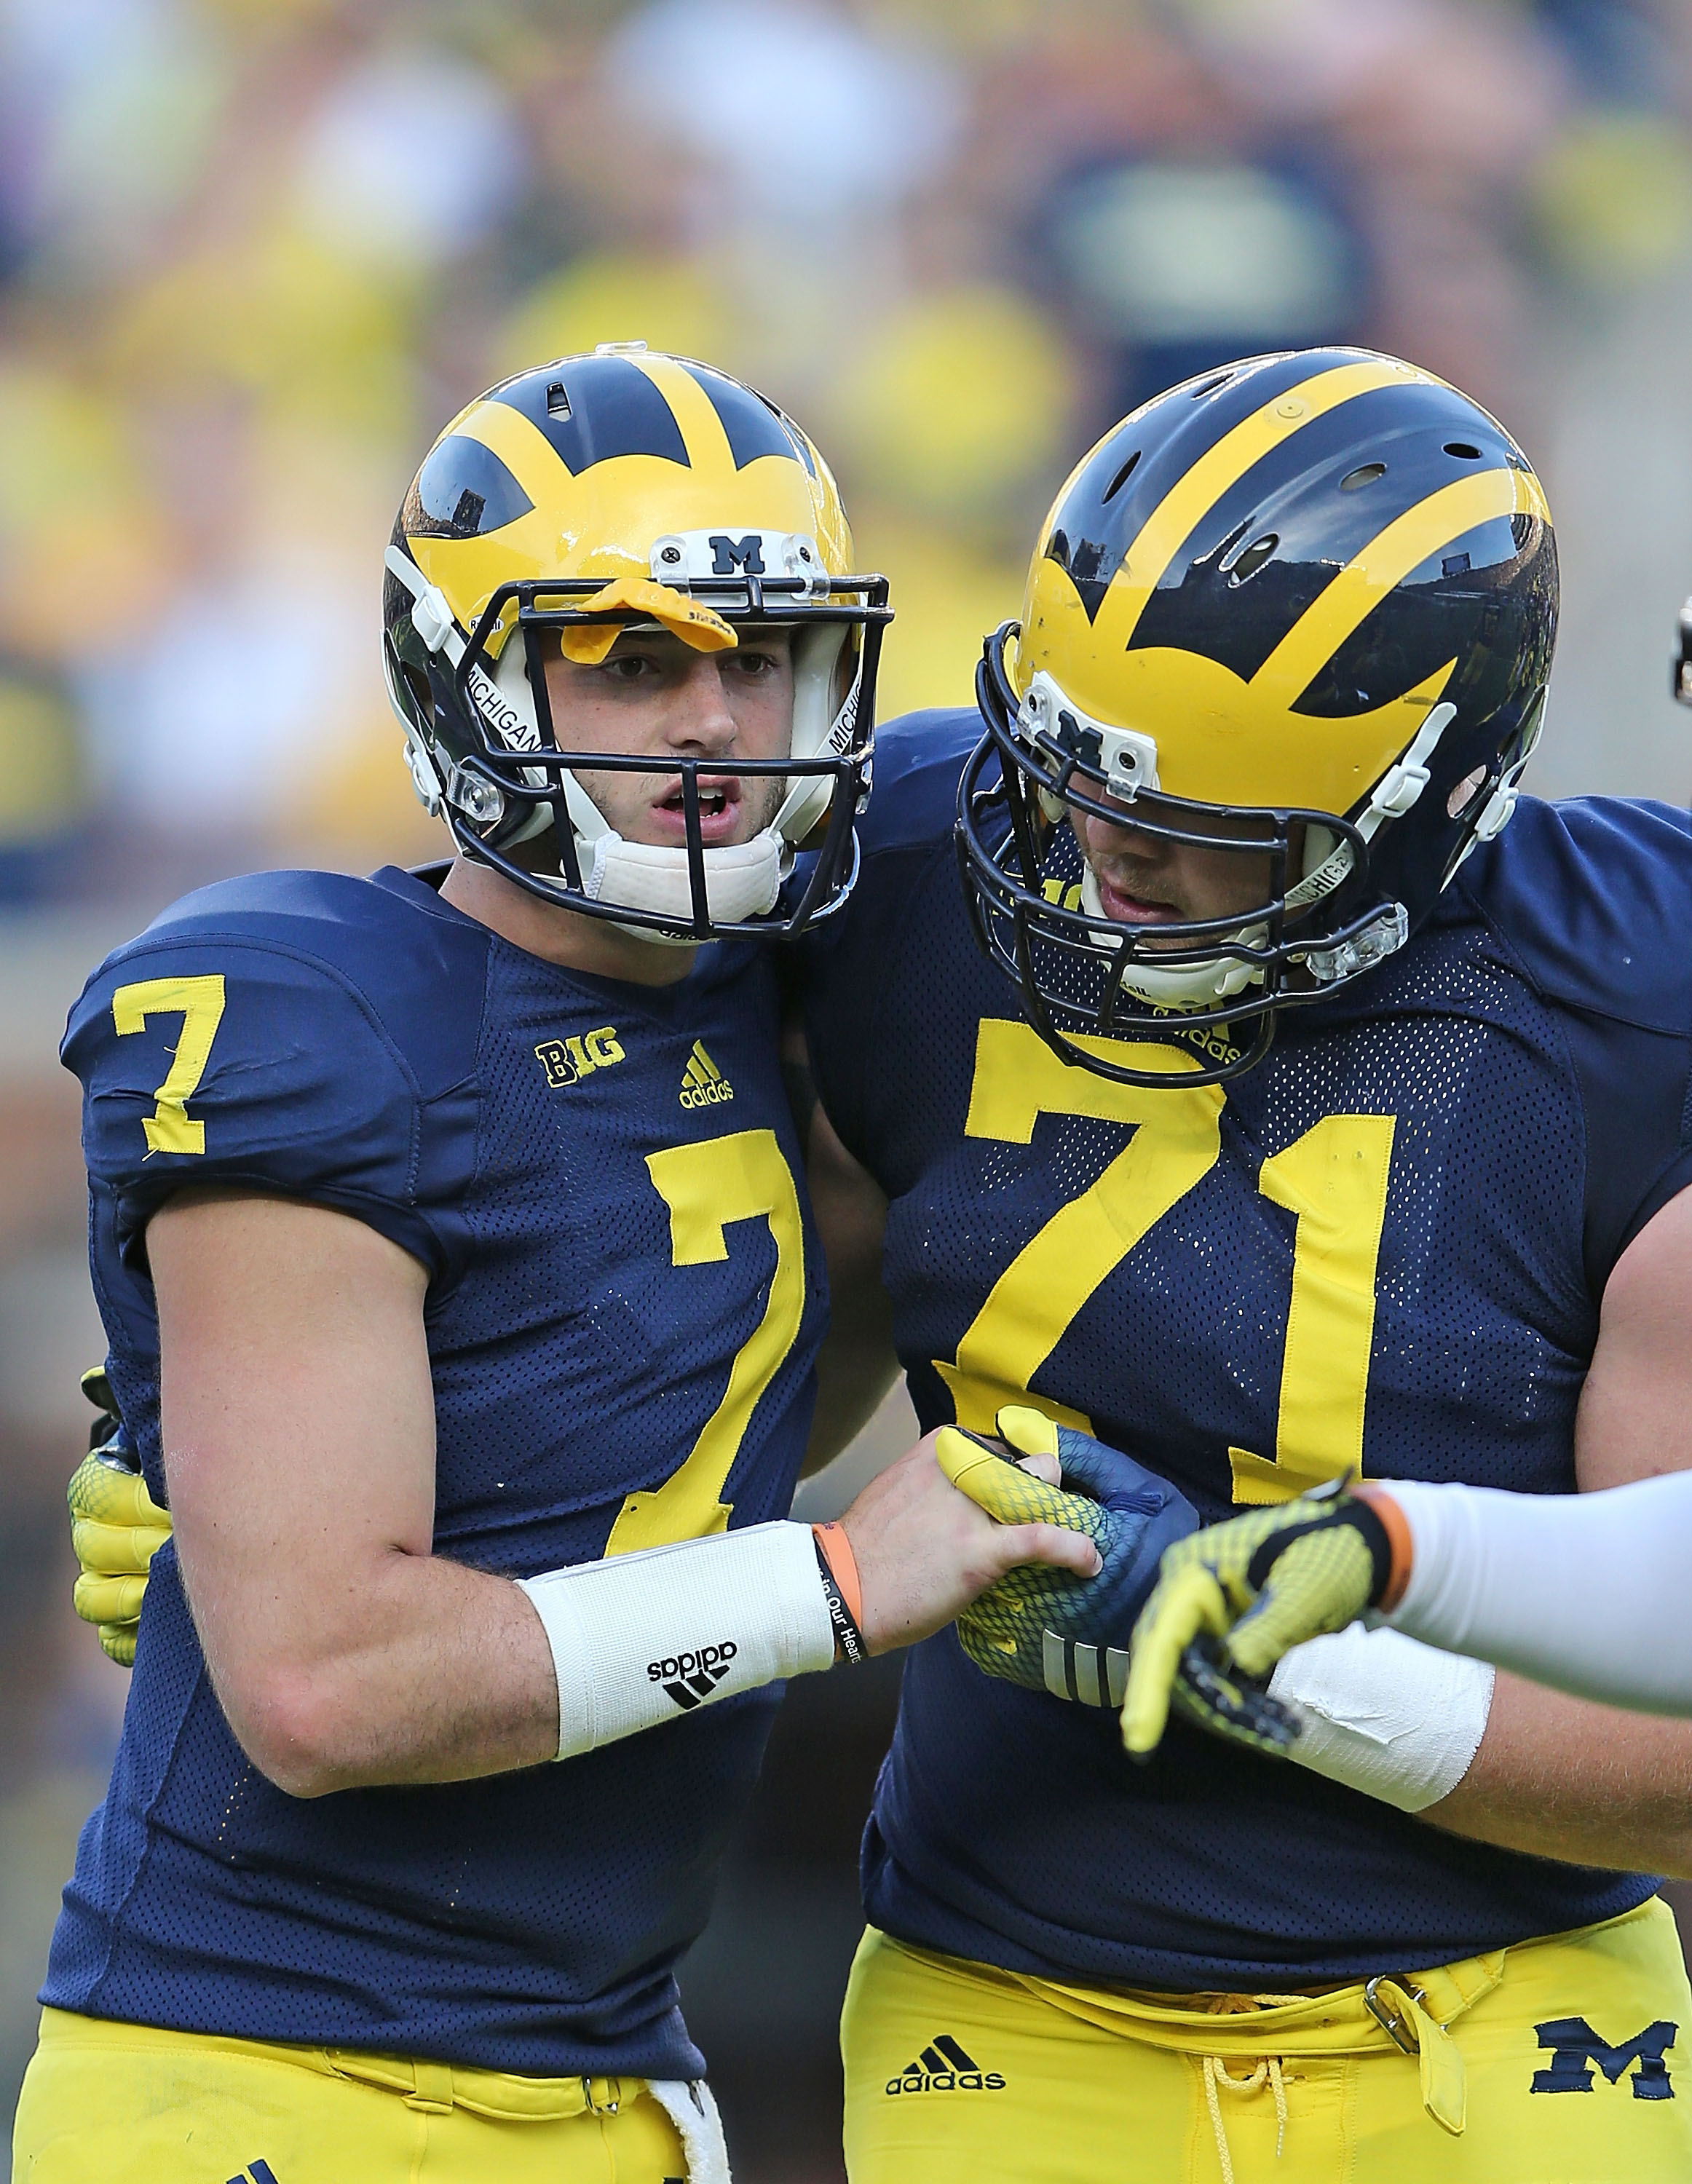 Quarterback Shane Morris (#7) of the Michigan Wolverines is helped off the field by Ben Braden (#71) during the fourth quarter of the game against the Minnesota Golden Gophers on Sept. 27, 2014, at Michigan Stadium in Ann Arbor, Mich.